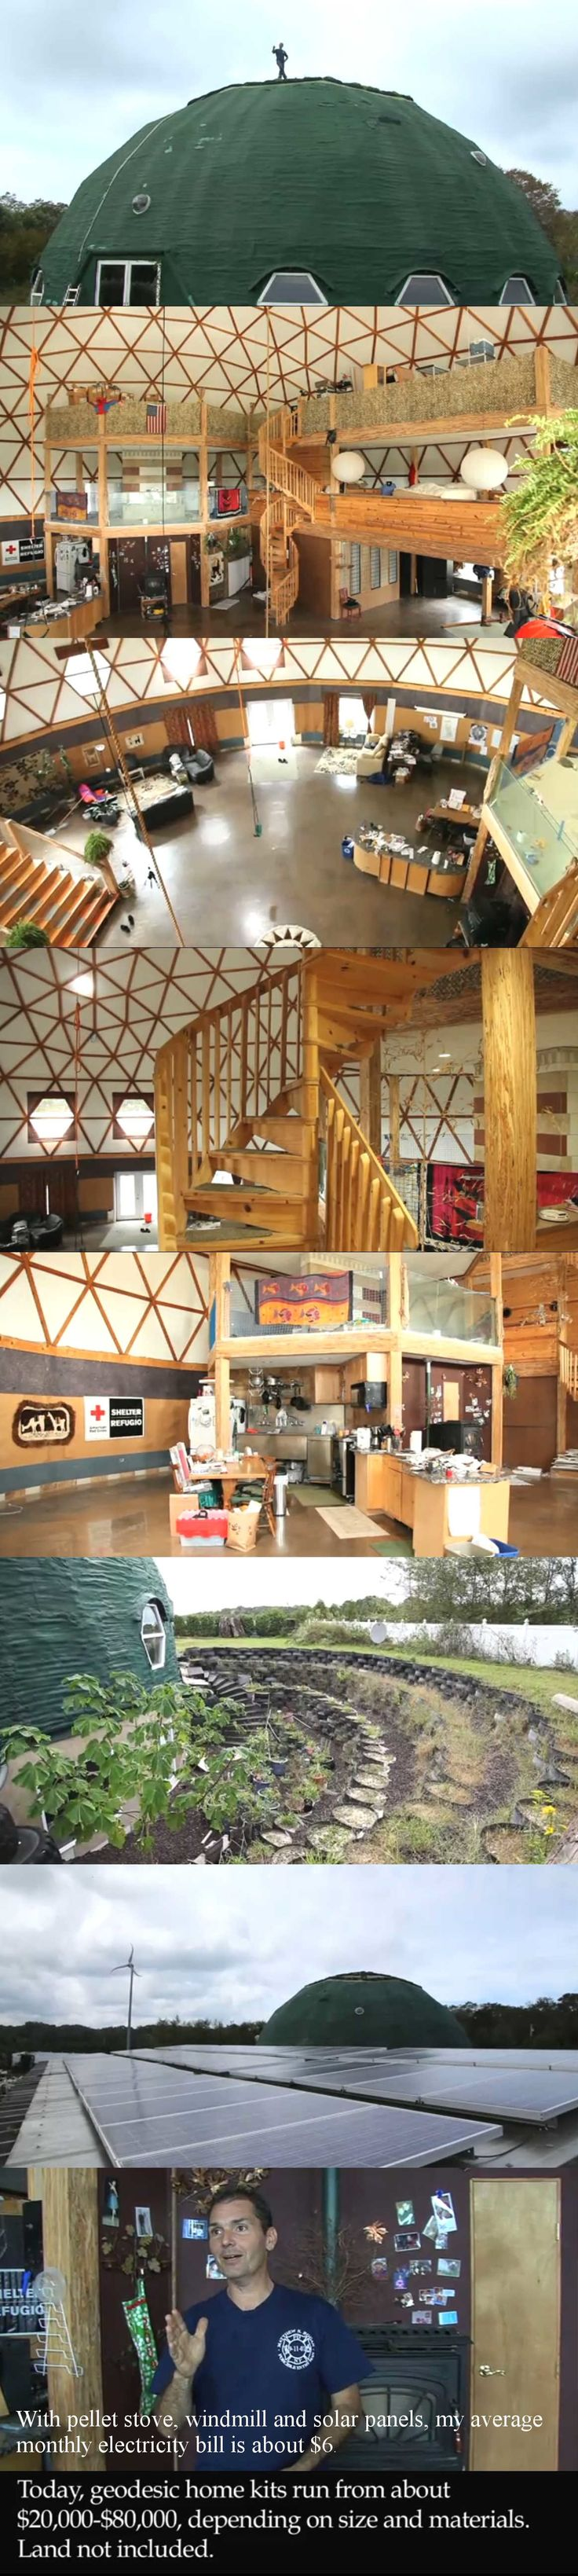 Wonderful example of a classy, energy efficient geodesic dome-home. Great video found at http://www.sciencefriday.com/video/09/30/2011/this-dome-is-a-home.html#path/video/09/30/2011/this-dome-is-a-home.html.